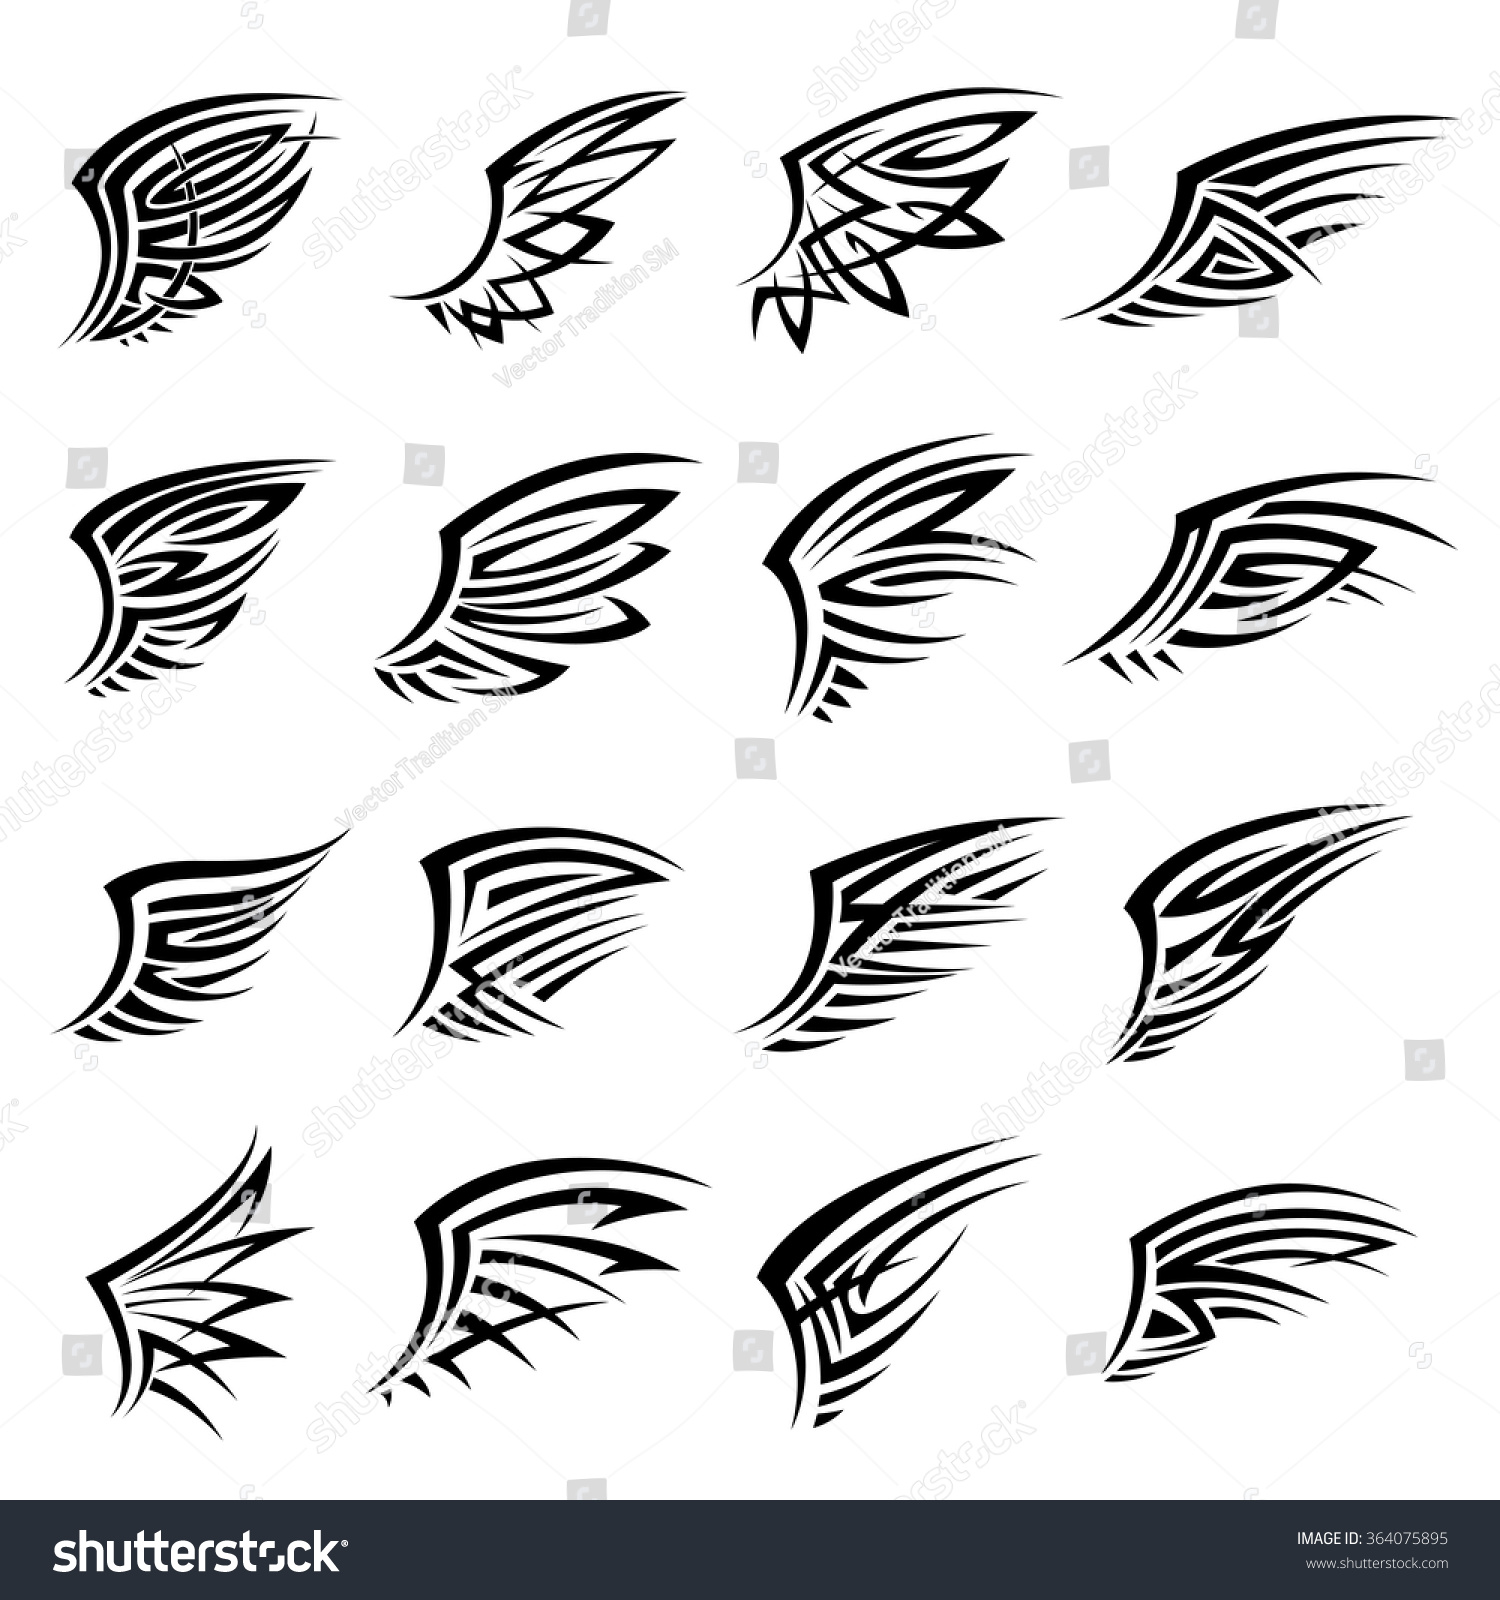 black tribal tattoo designs isolated wings stock vector 364075895 shutterstock. Black Bedroom Furniture Sets. Home Design Ideas